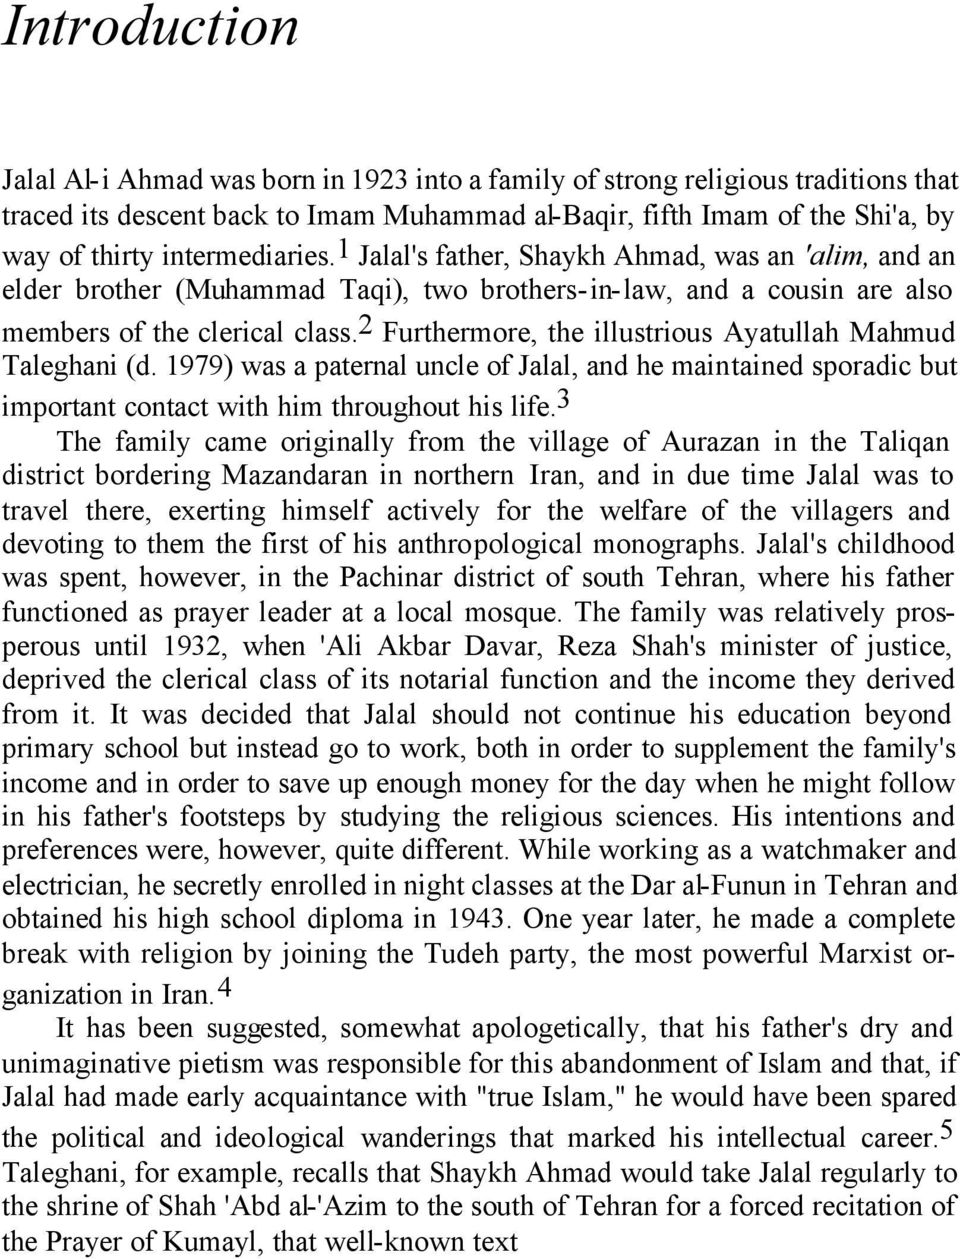 2 Furthermore, the illustrious Ayatullah Mahmud Taleghani (d. 1979) was a paternal uncle of Jalal, and he maintained sporadic but important contact with him throughout his life.